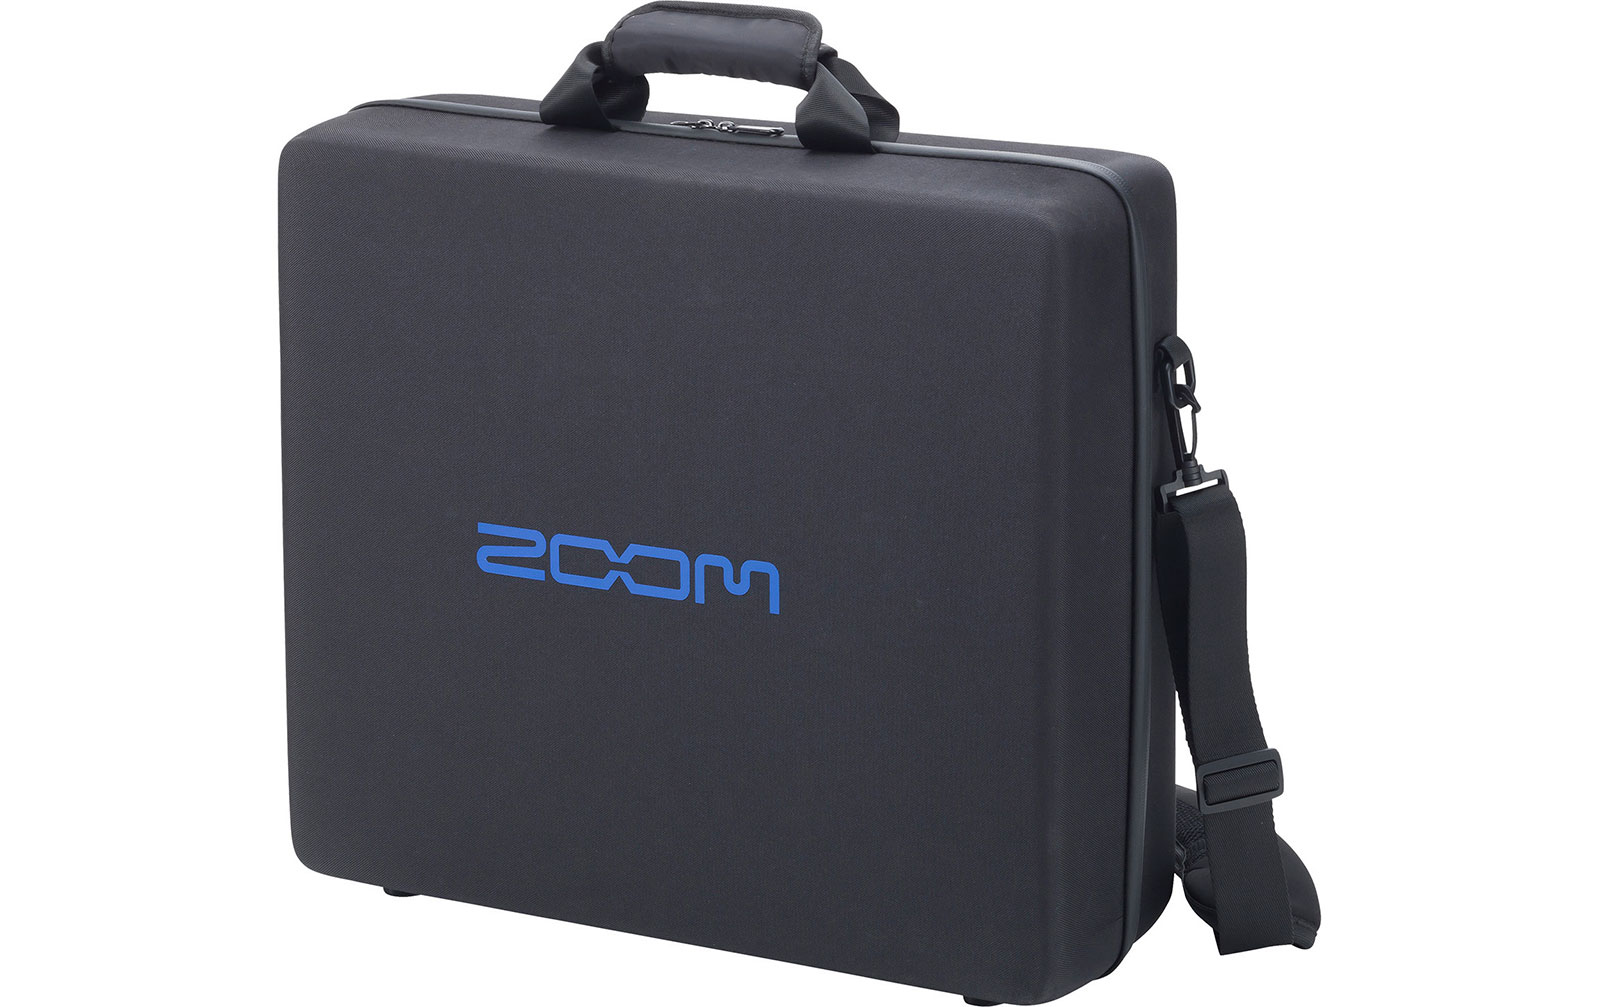 zoom-cbl-20-carrying-bag-for-l20-l12